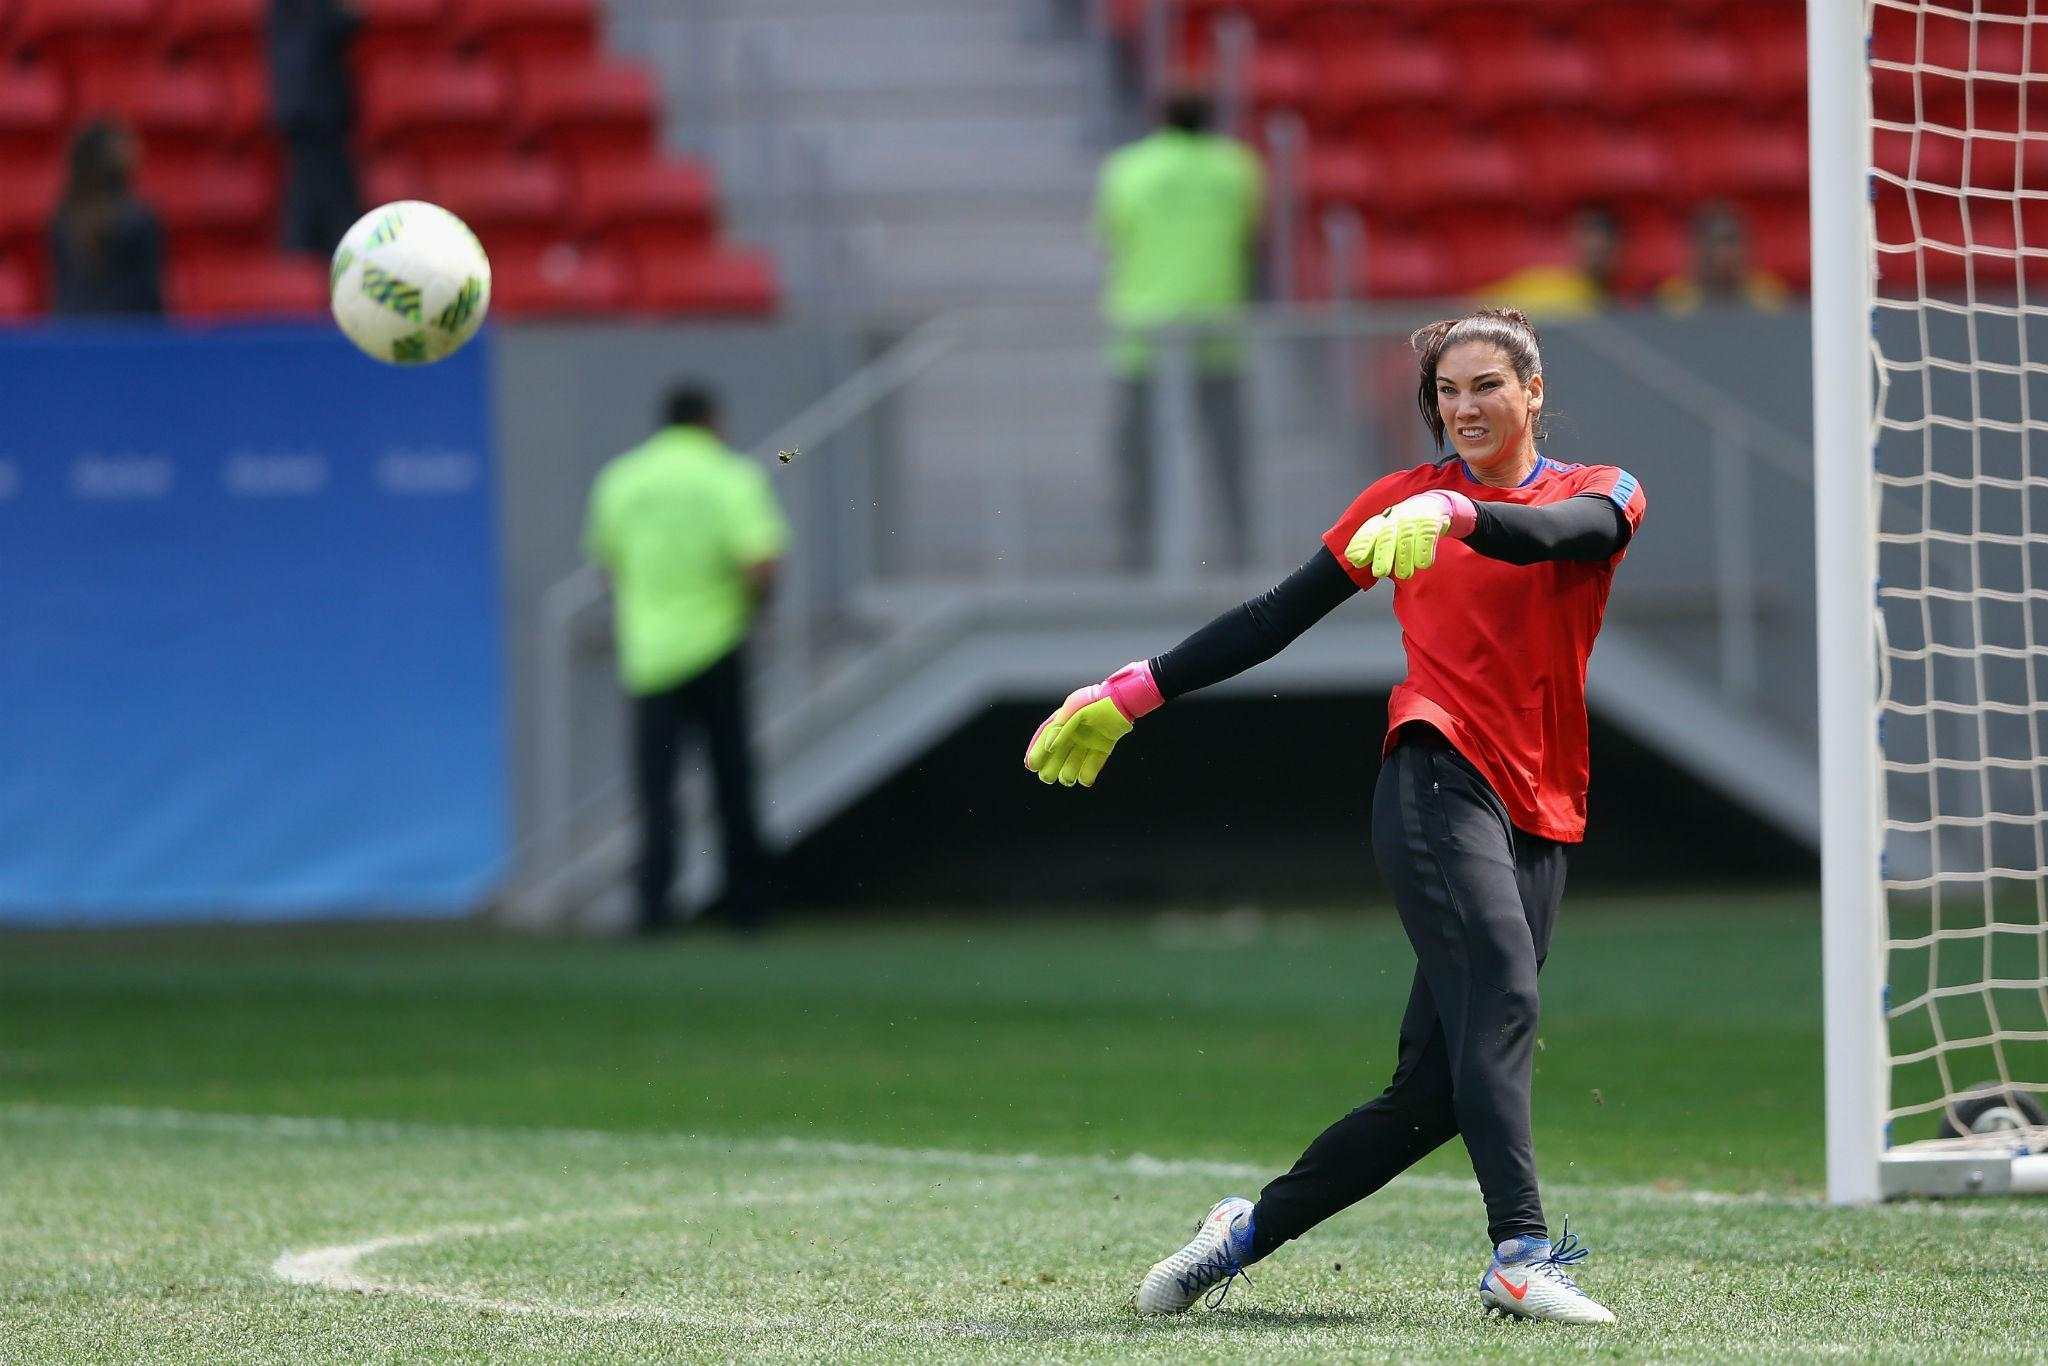 Rio 2016: Hope Solo brands Swedish women's soccer team 'a bunch of cowards'